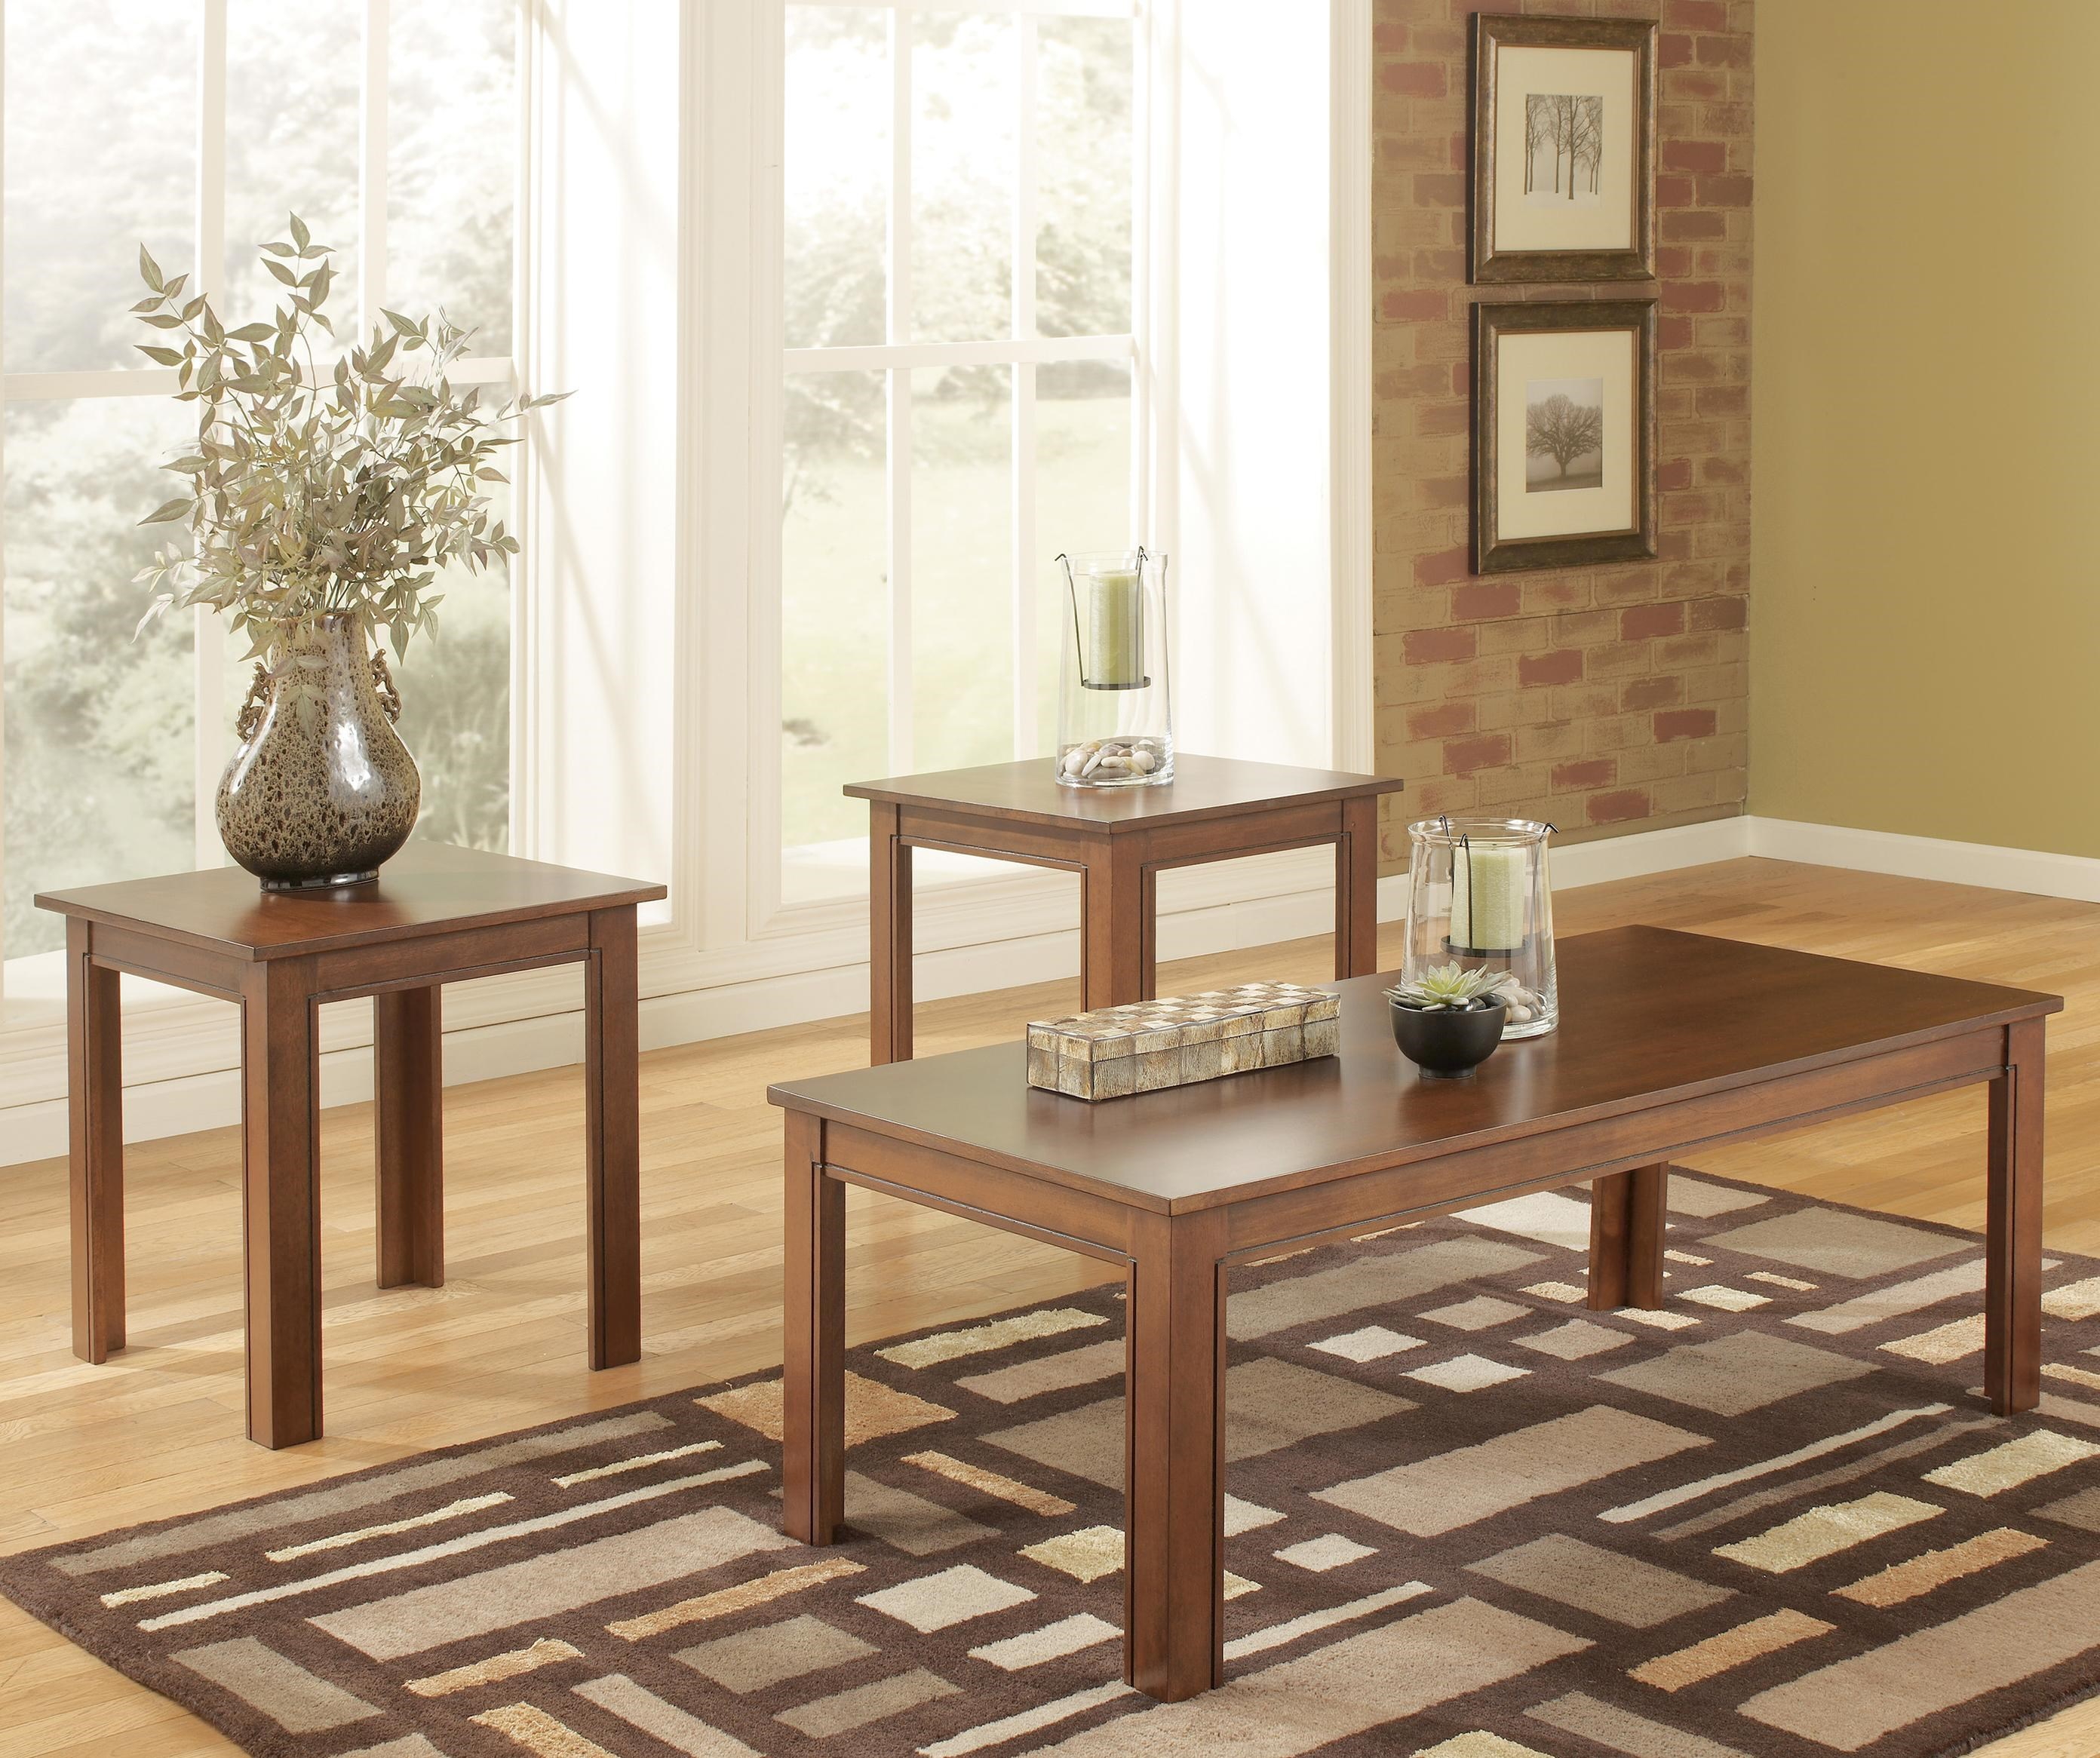 Signature Design By Ashley Yoshi 3 Piece Table Set With Two End Tables